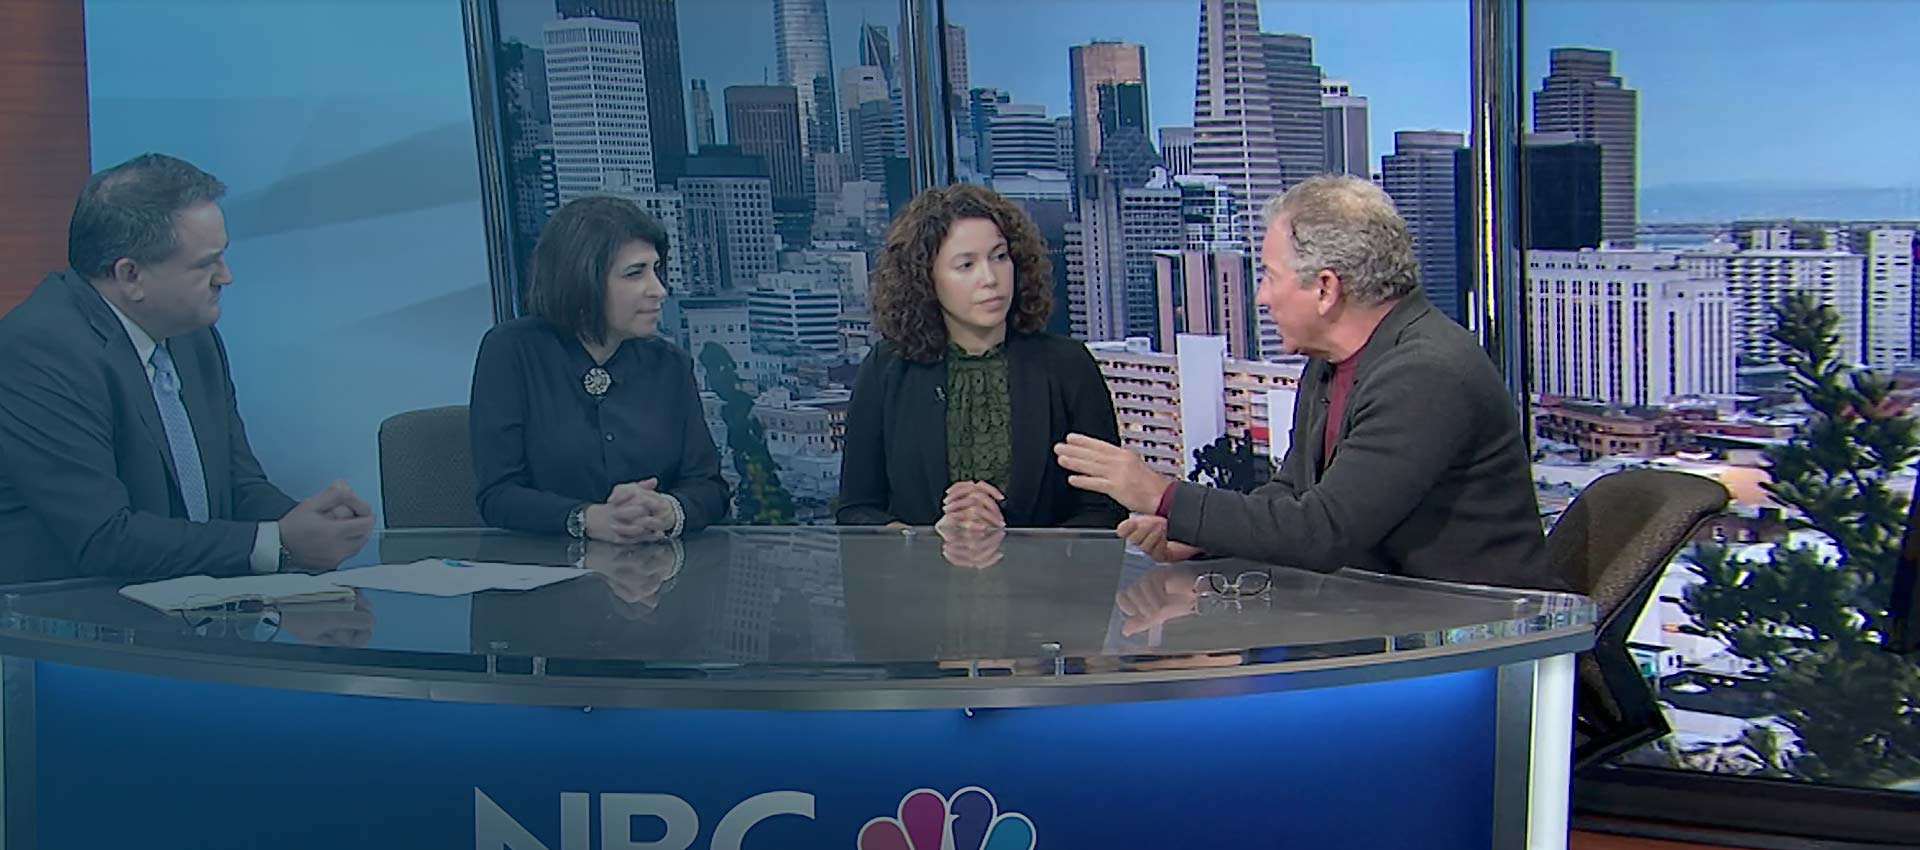 Tom Siebel on AI and Ethics, appearing on NBC's Press:Here